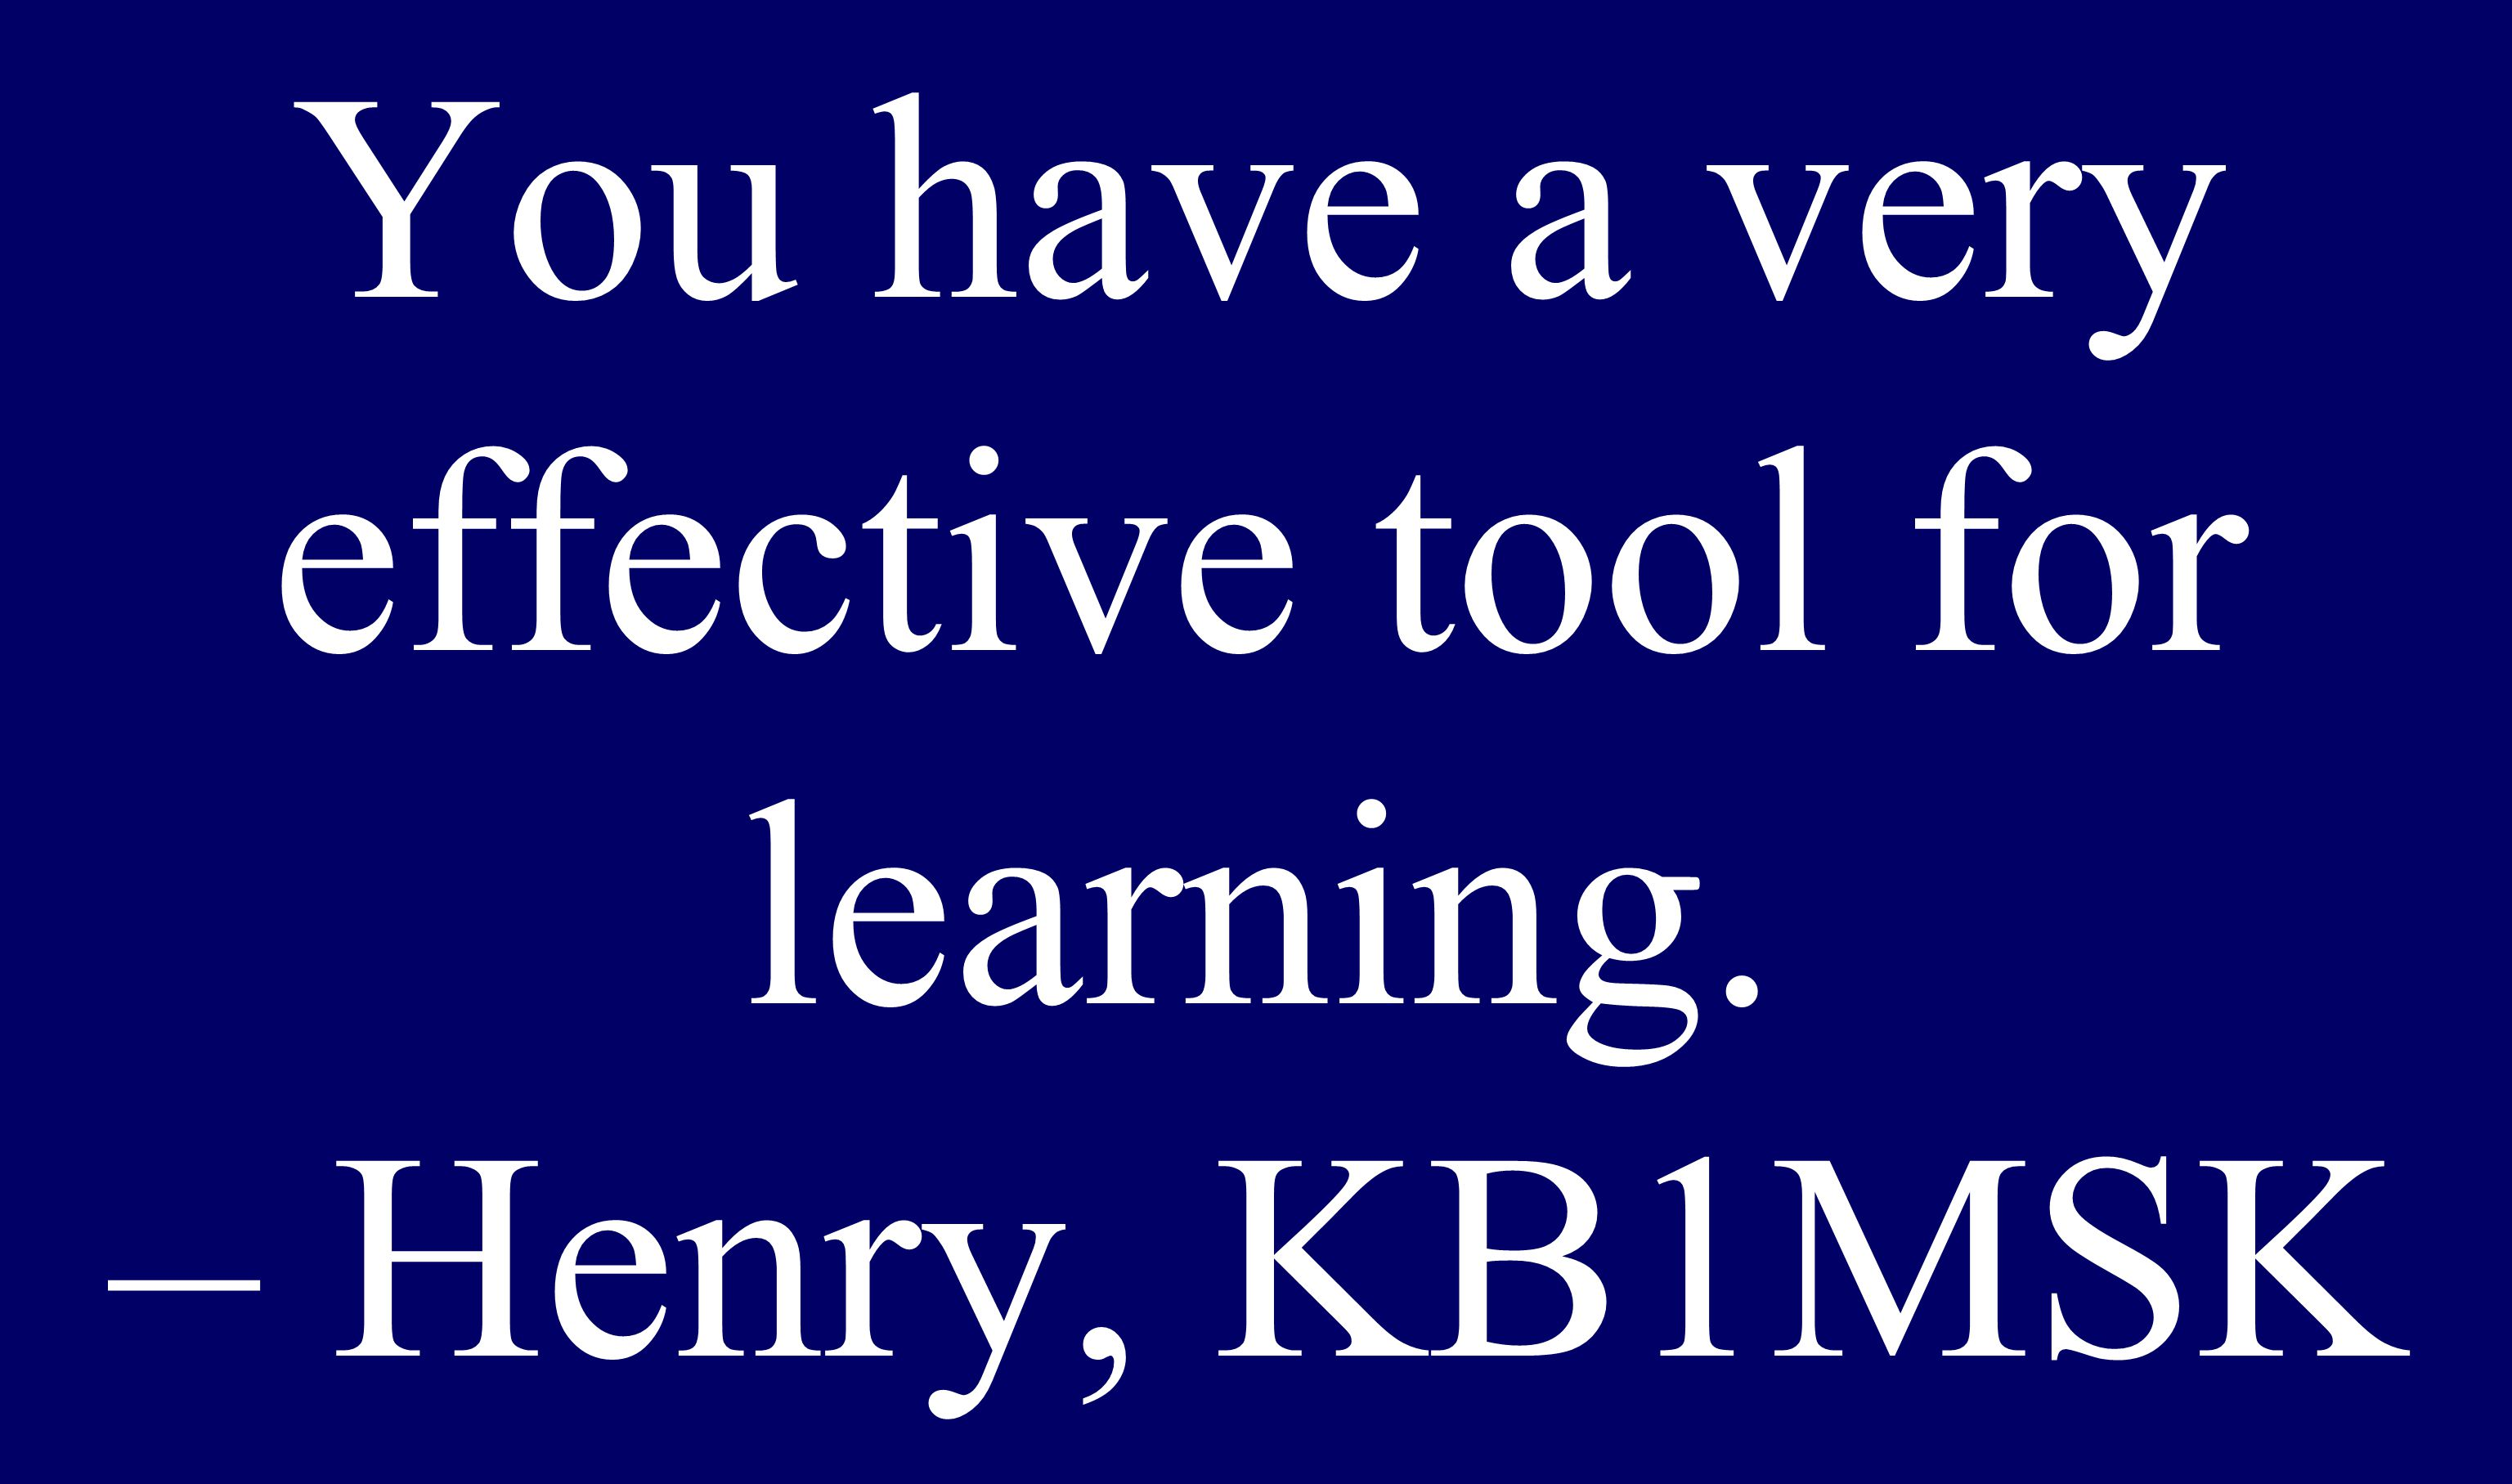 You're never too young... You have a very effective tool for learning. – Henry, KB1MSK